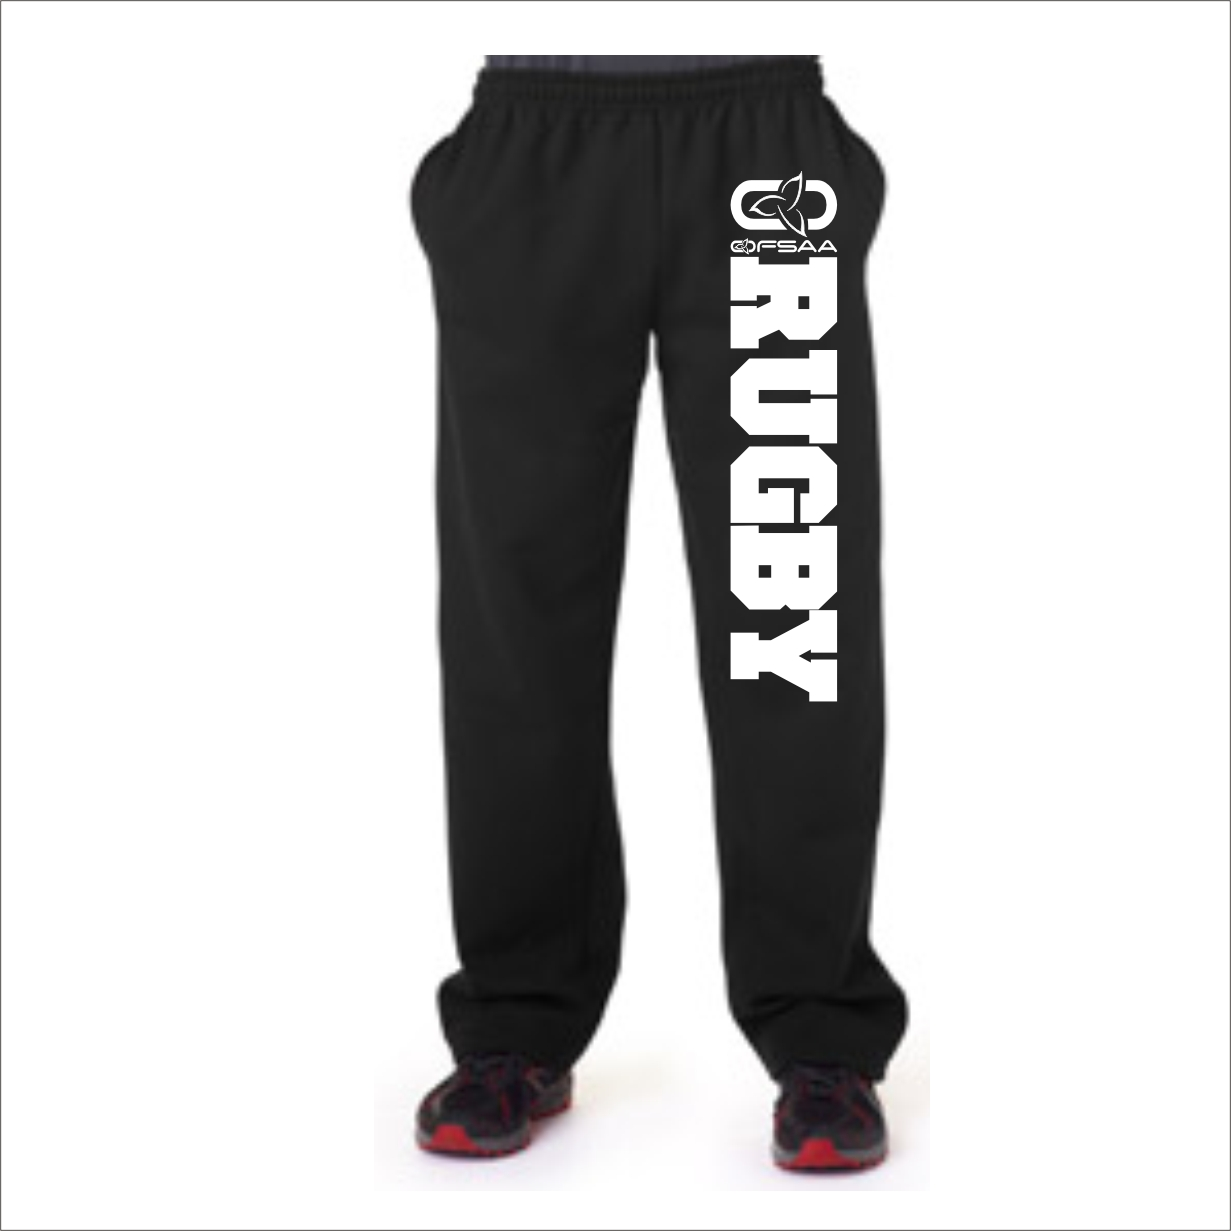 2015 Rugby Pants single.jpg